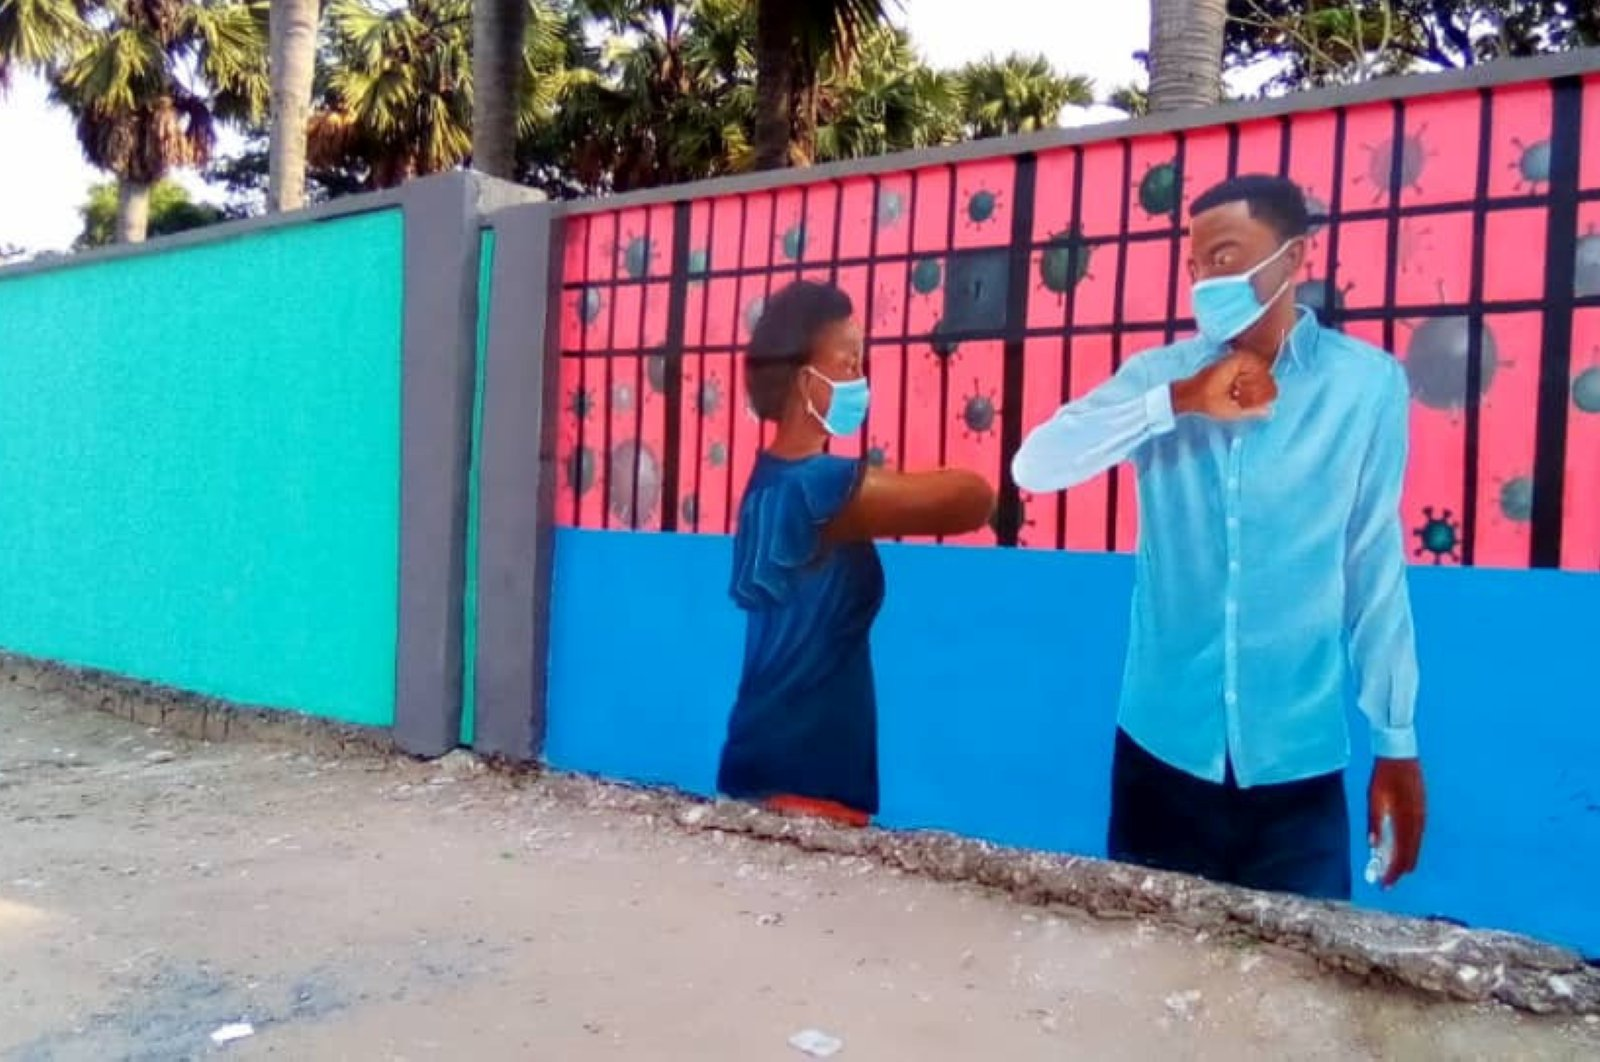 A wall mural depicts an advocacy message on greetings as a measure against coronavirus disease (COVID-19) outbreak, on the walls of the Kinshasa Academy of Fine Arts in Kinshasa, Democratic Republic of Congo, June 22, 2020. (REUTERS PHOTO)